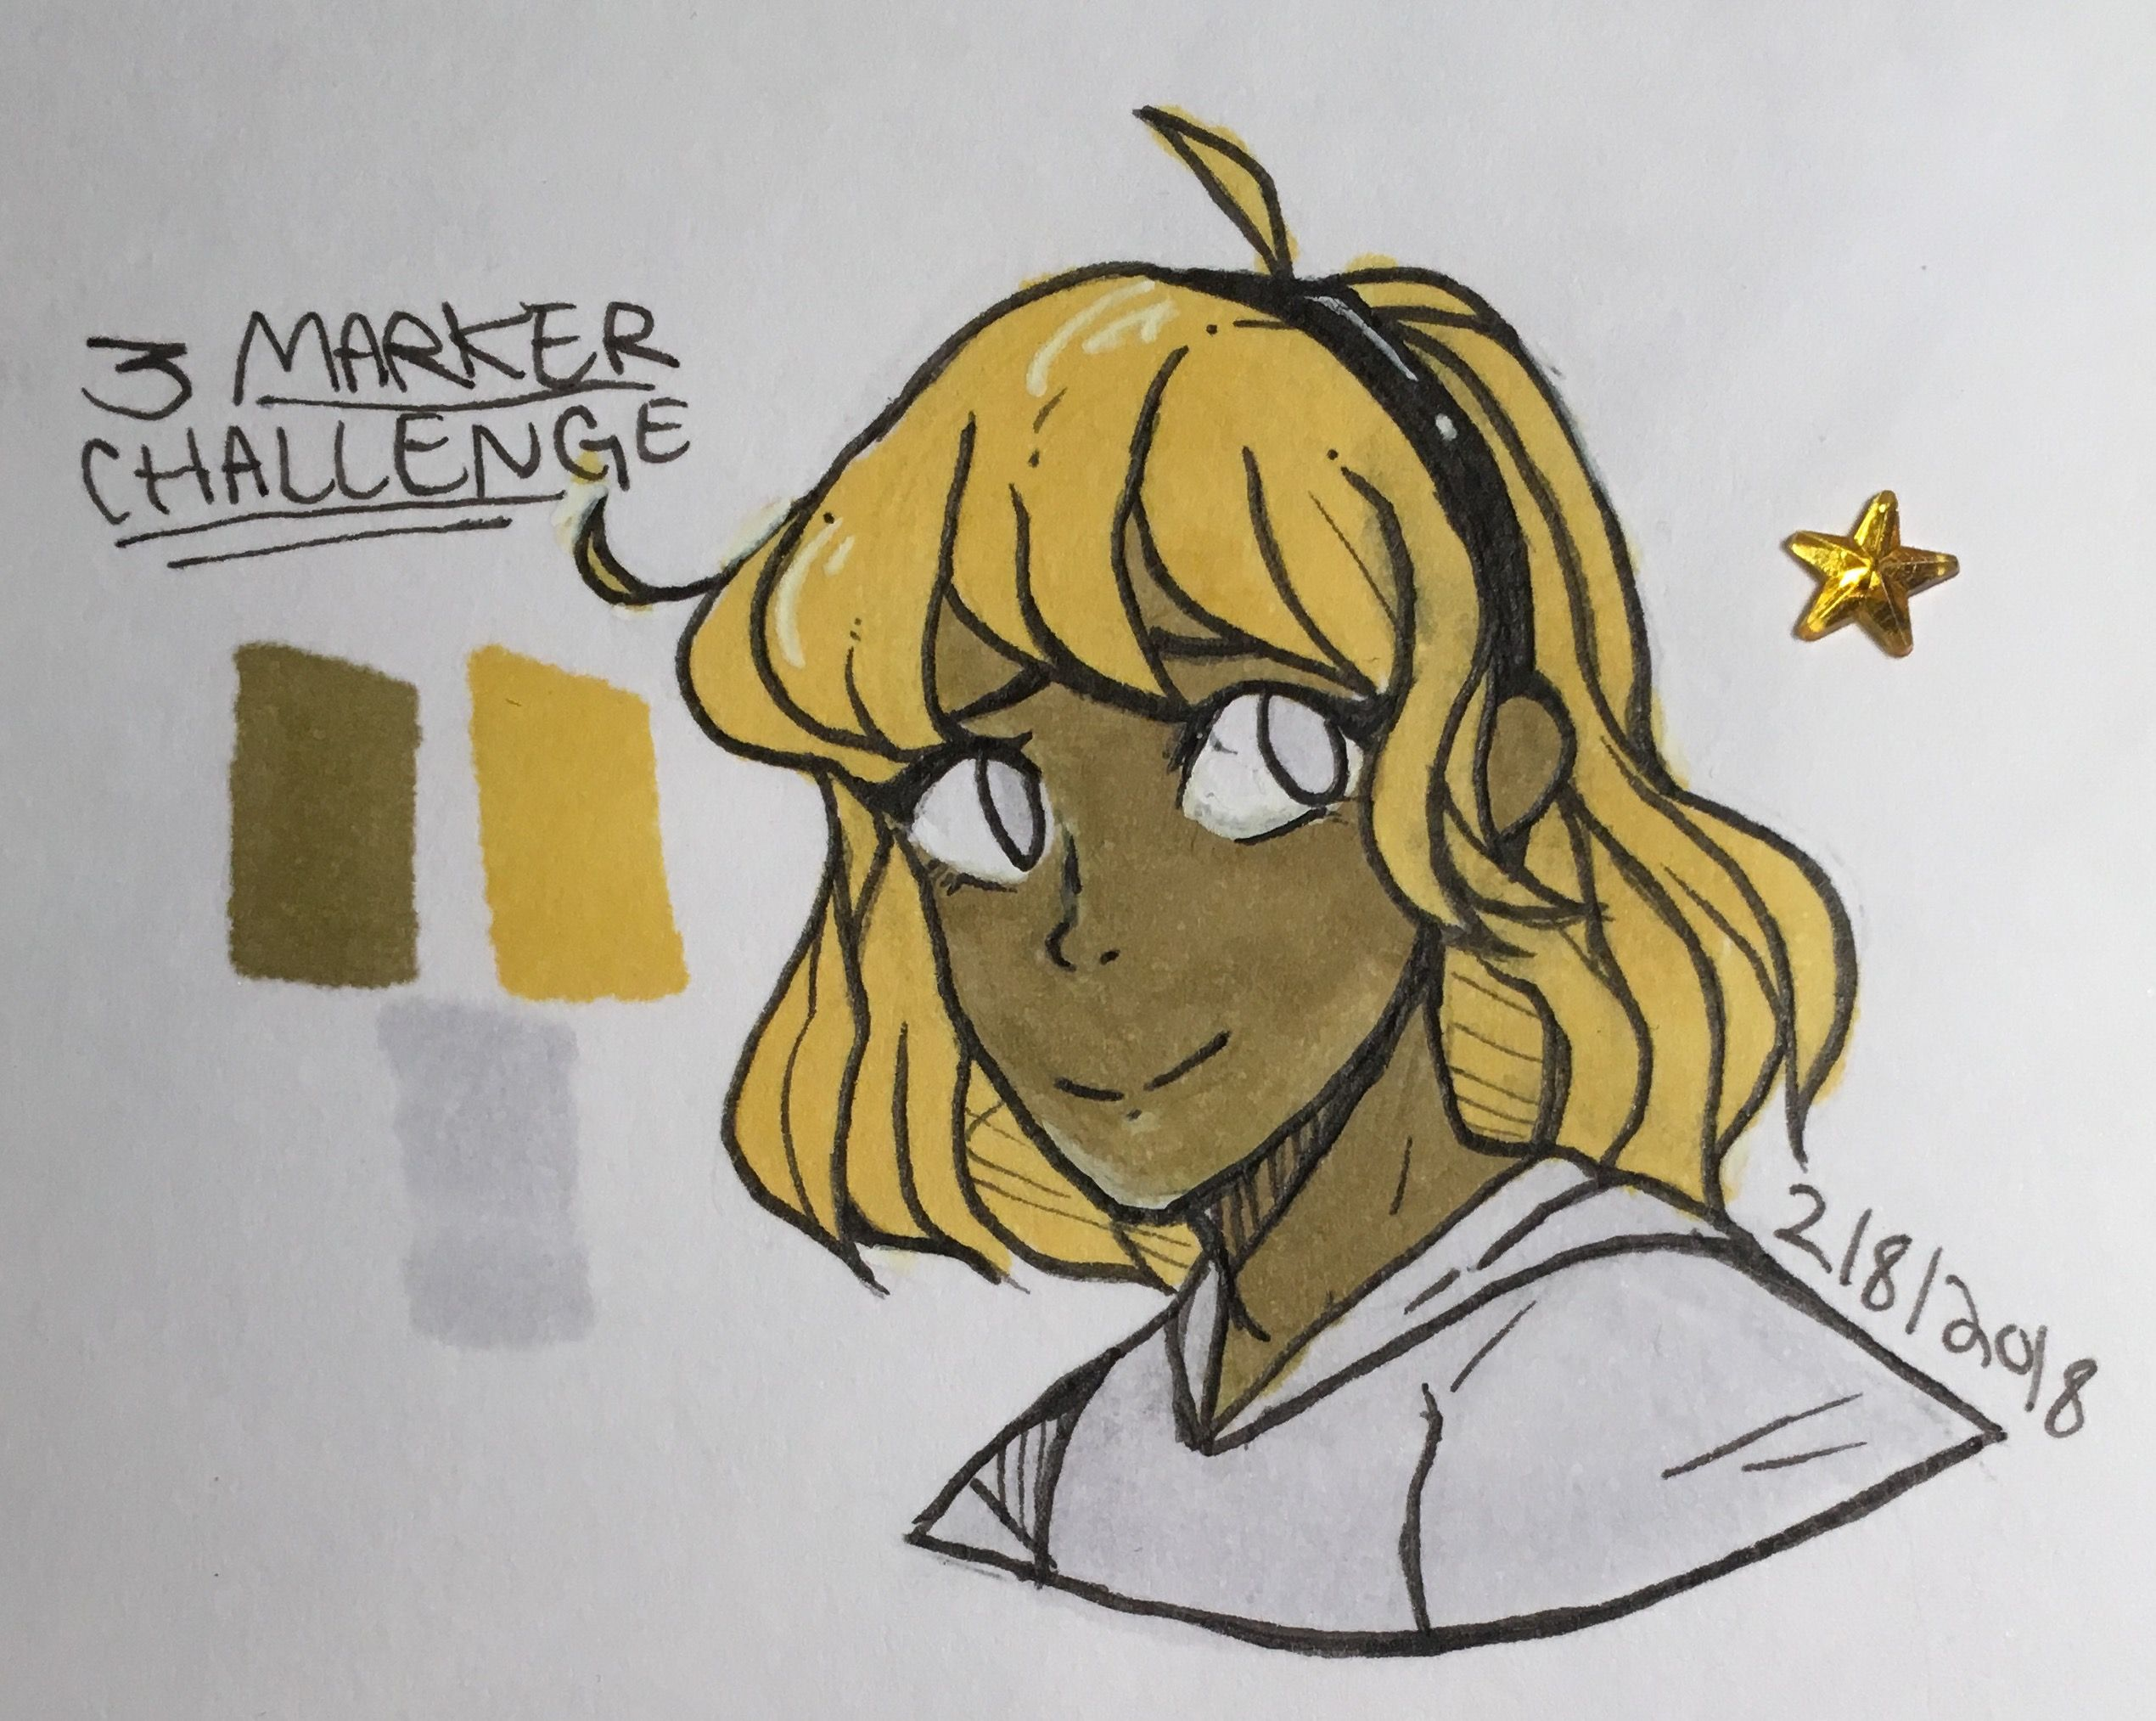 I Wanted To Do A Three Marker Challenge And Draw A Person So Here